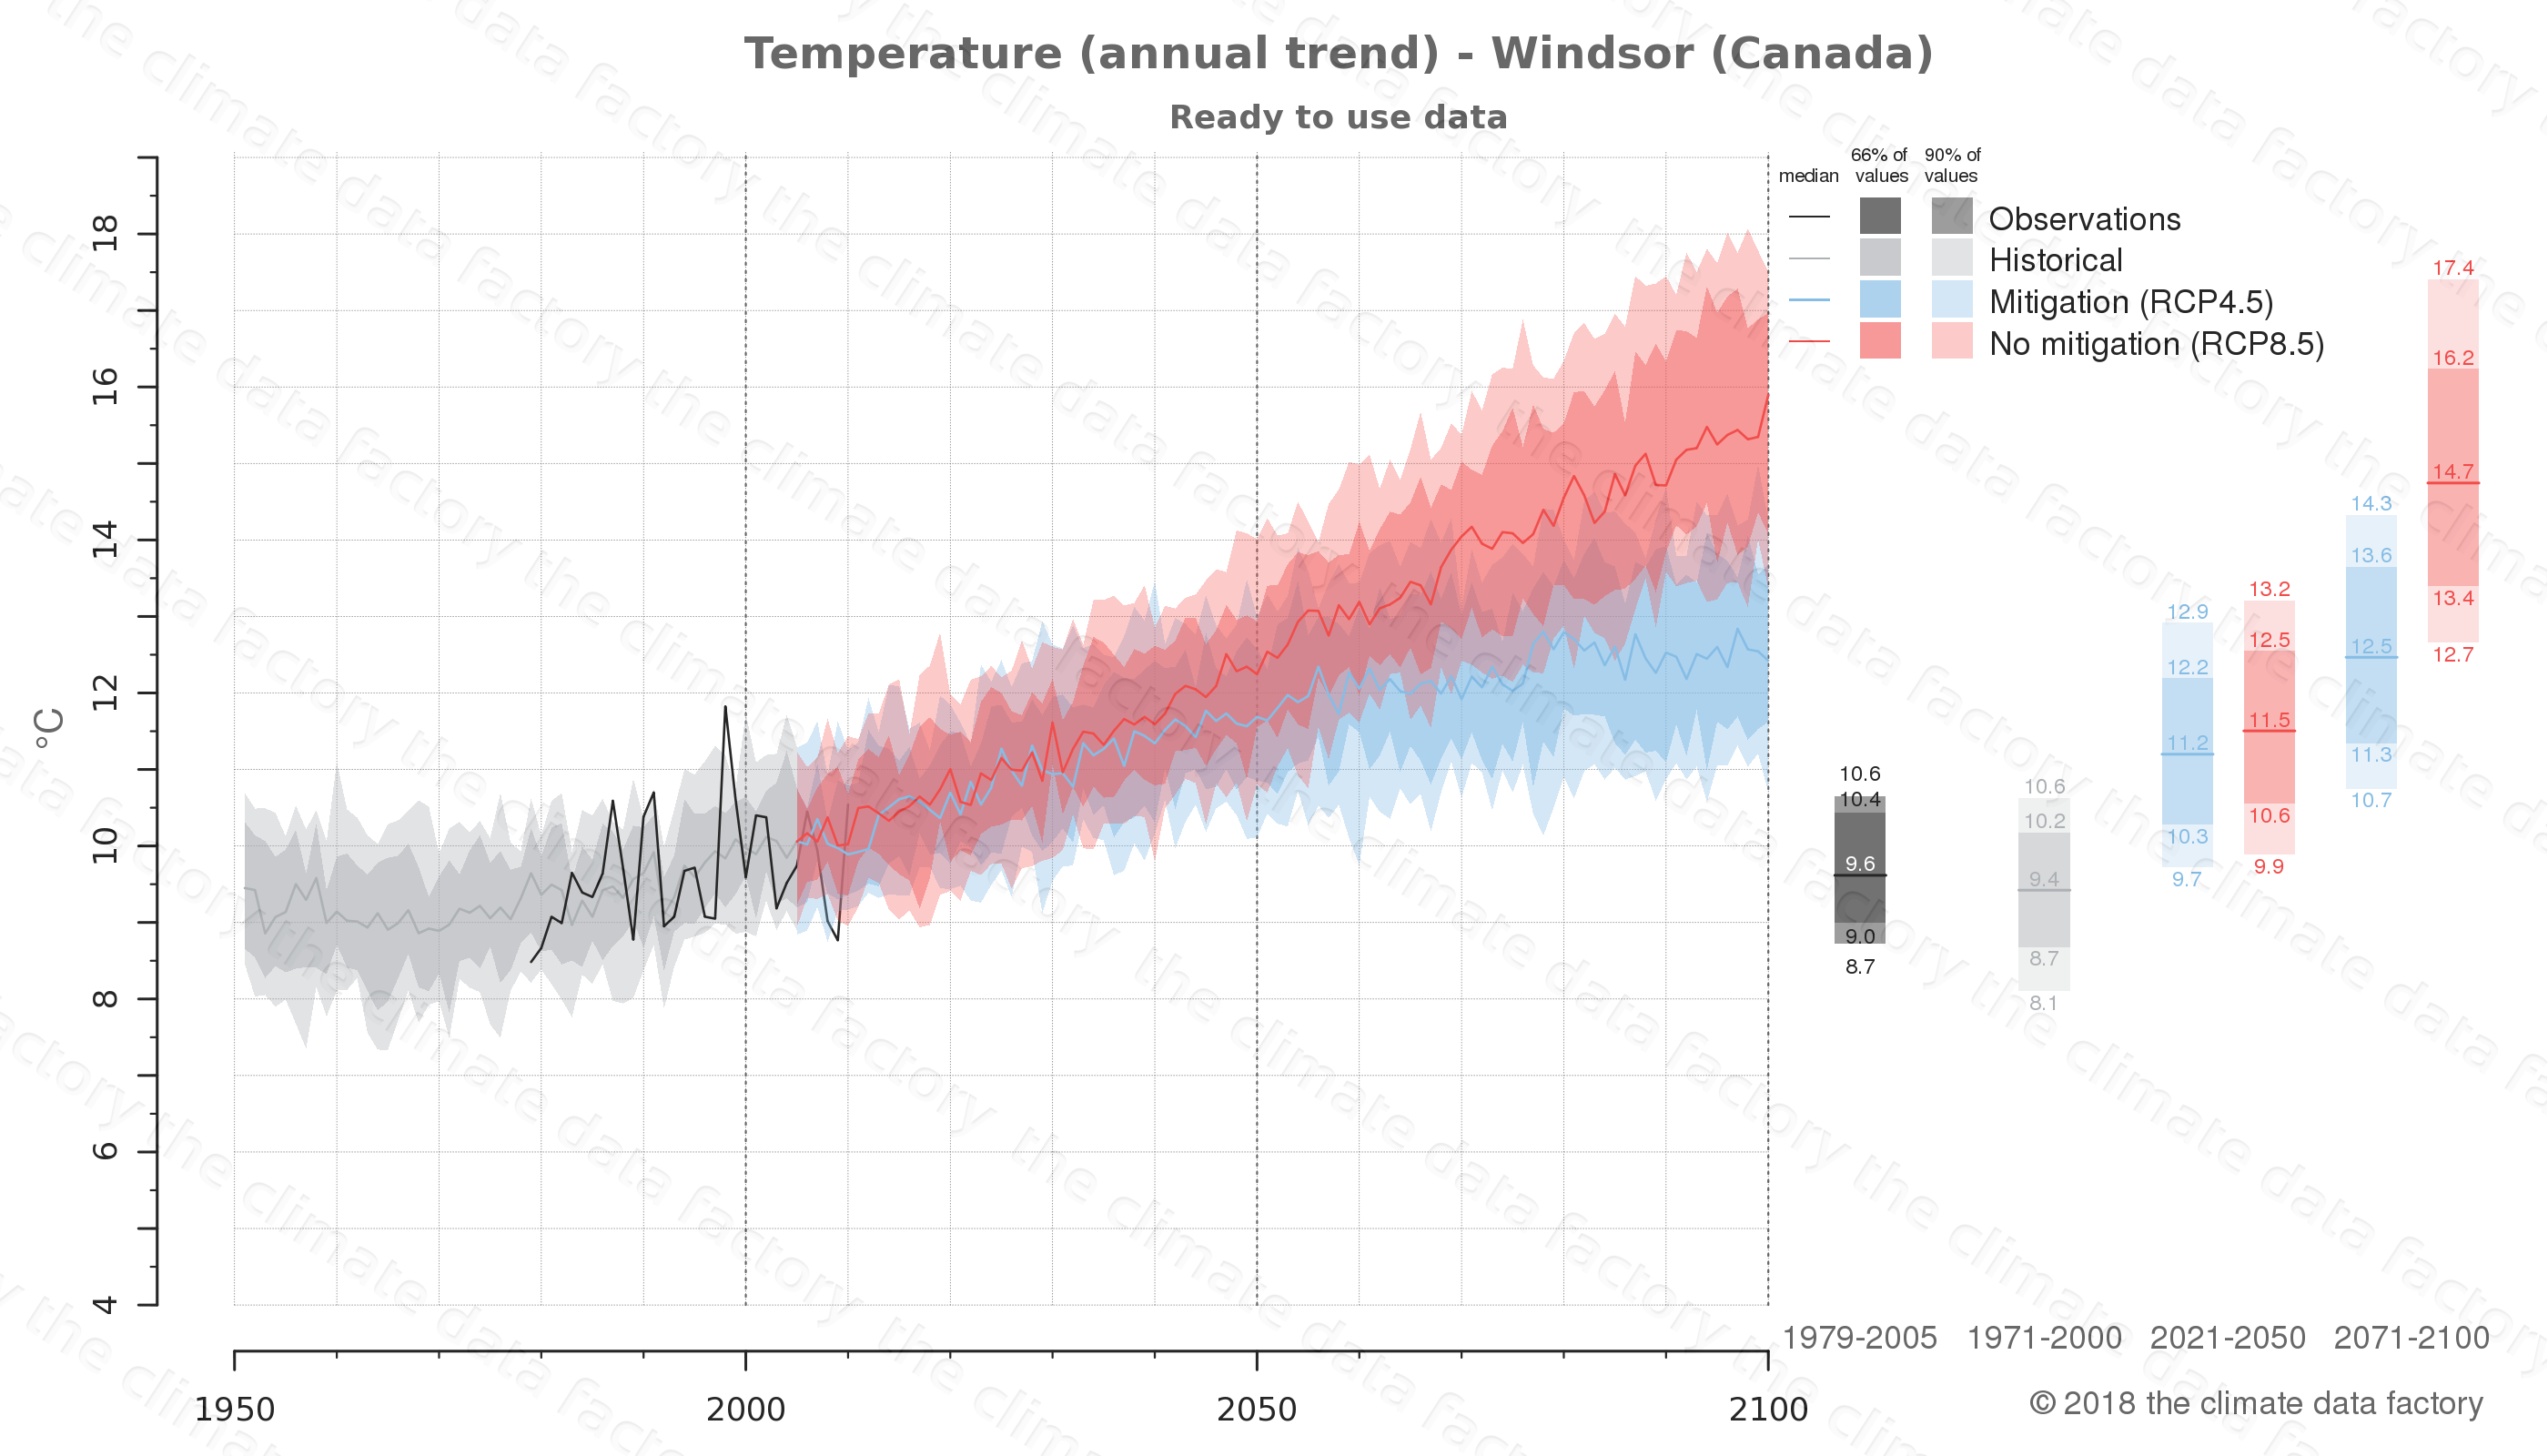 climate change data policy adaptation climate graph city data temperature windsor canada